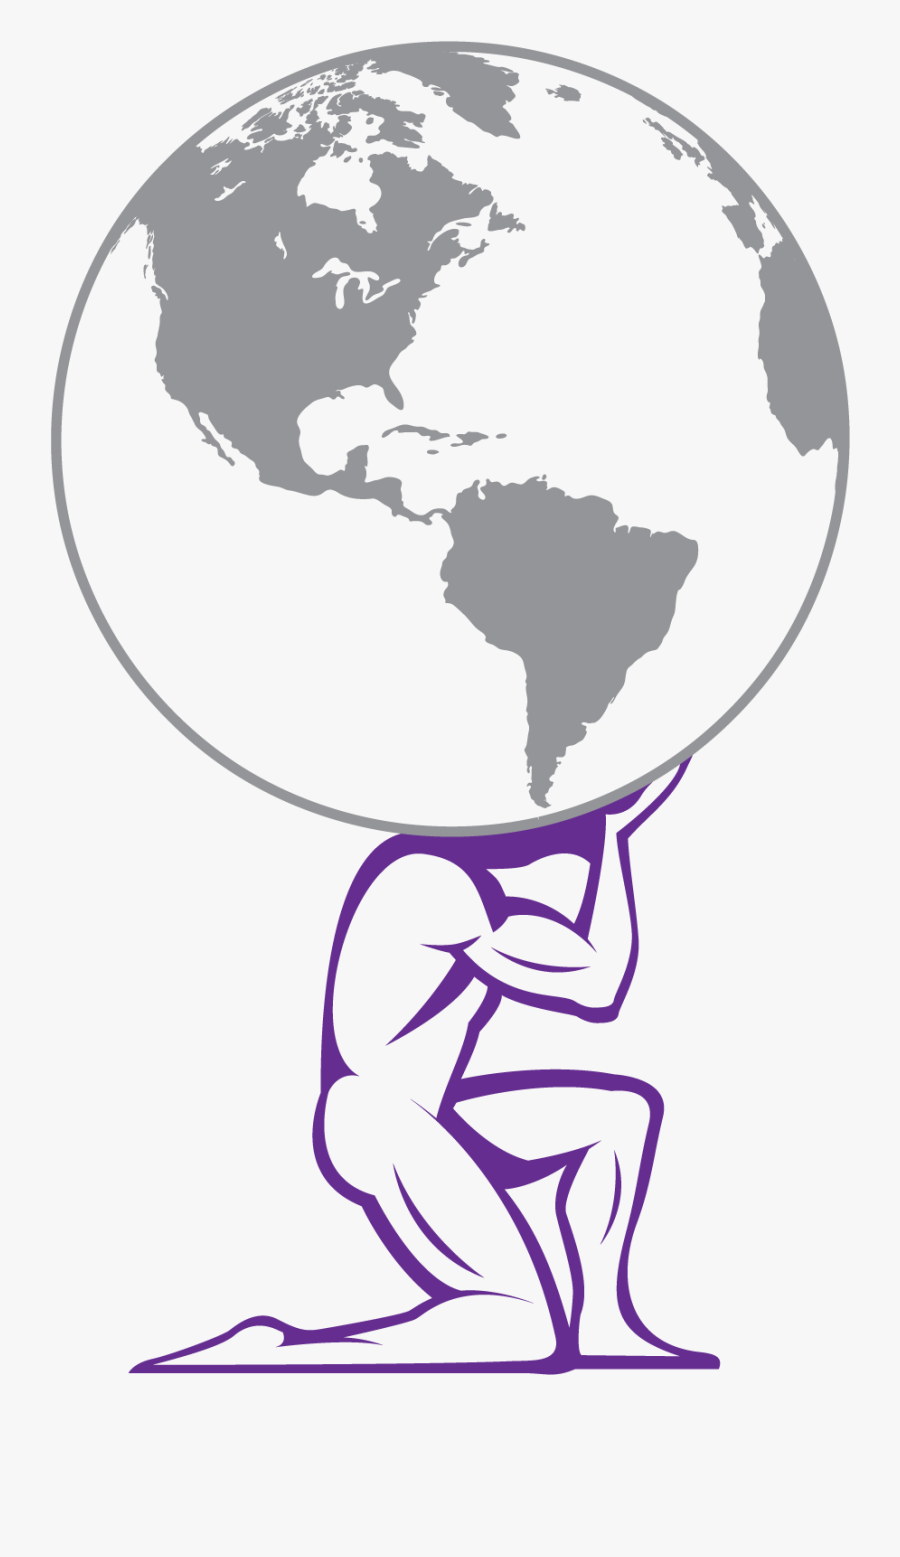 Transparent World Clipart - Atlas Holding Up The World Clipart, Transparent Clipart